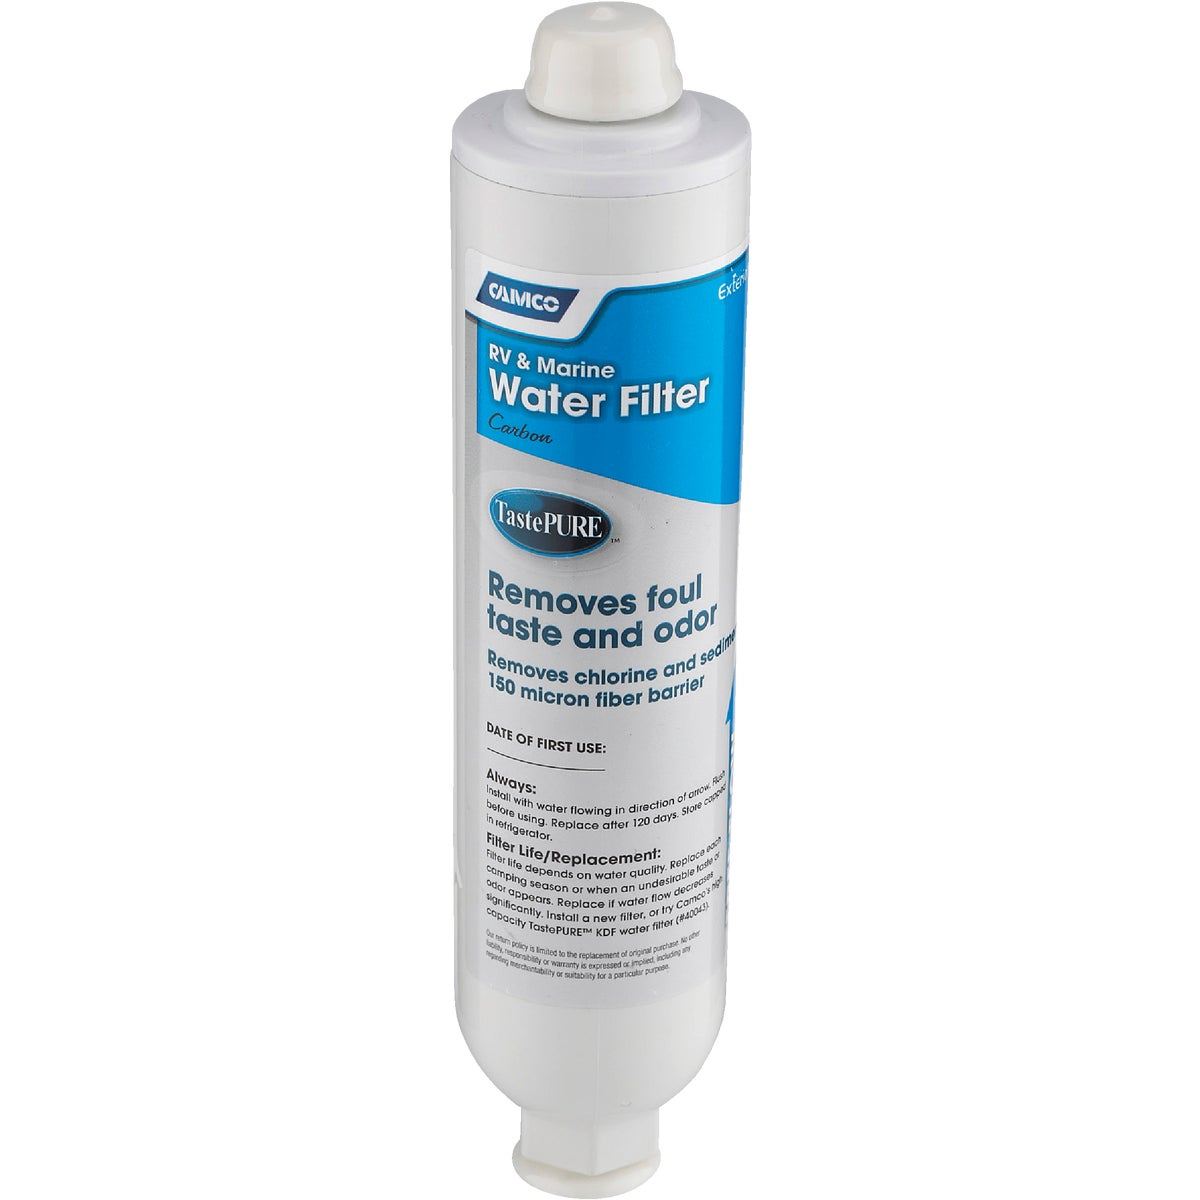 RV/MARINE WATER FILTER - 40645 by Camco Mfg.